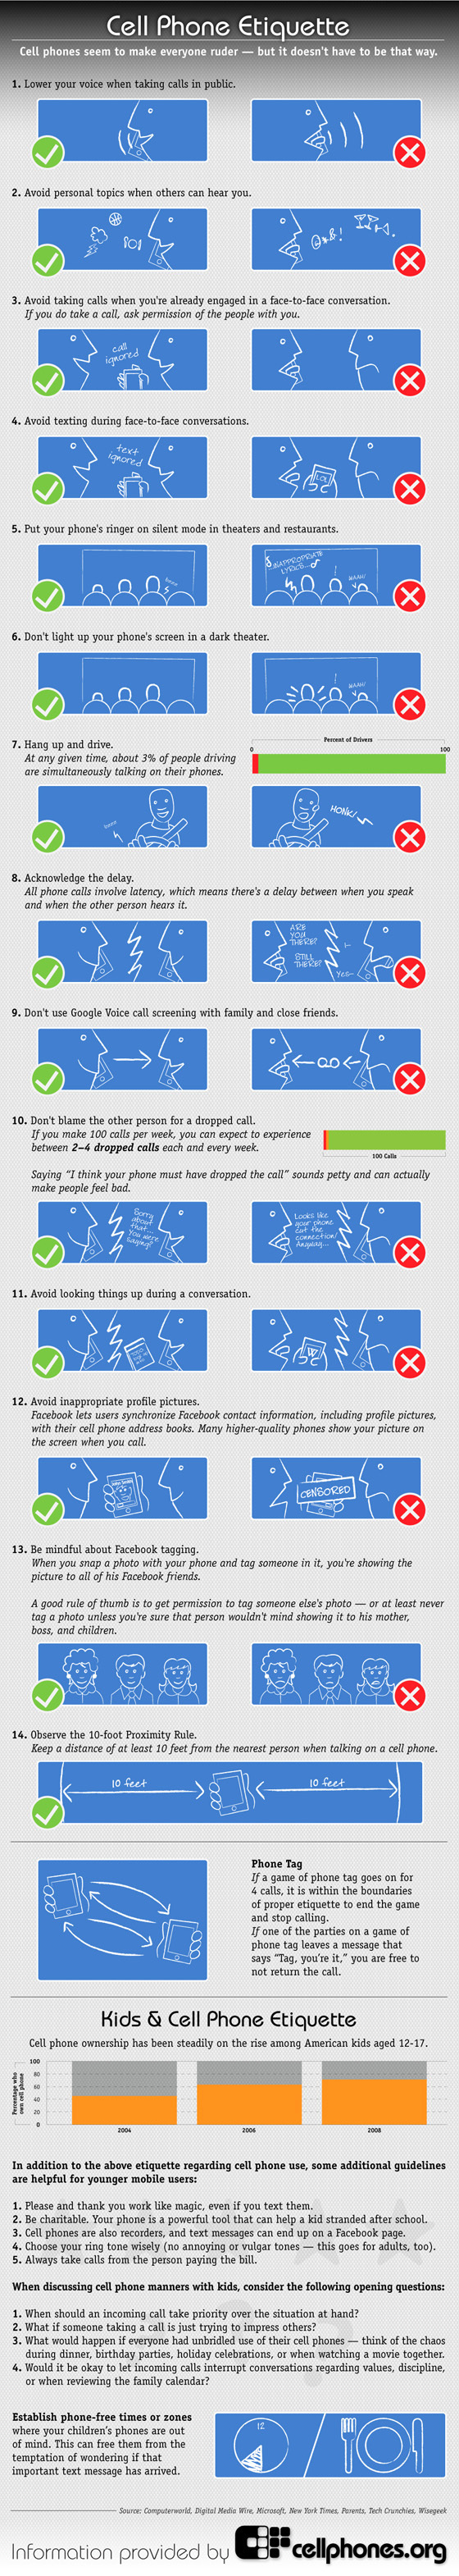 Cell Phone Etiquette: 15 Rules To Follow (PICTURE) | HuffPost